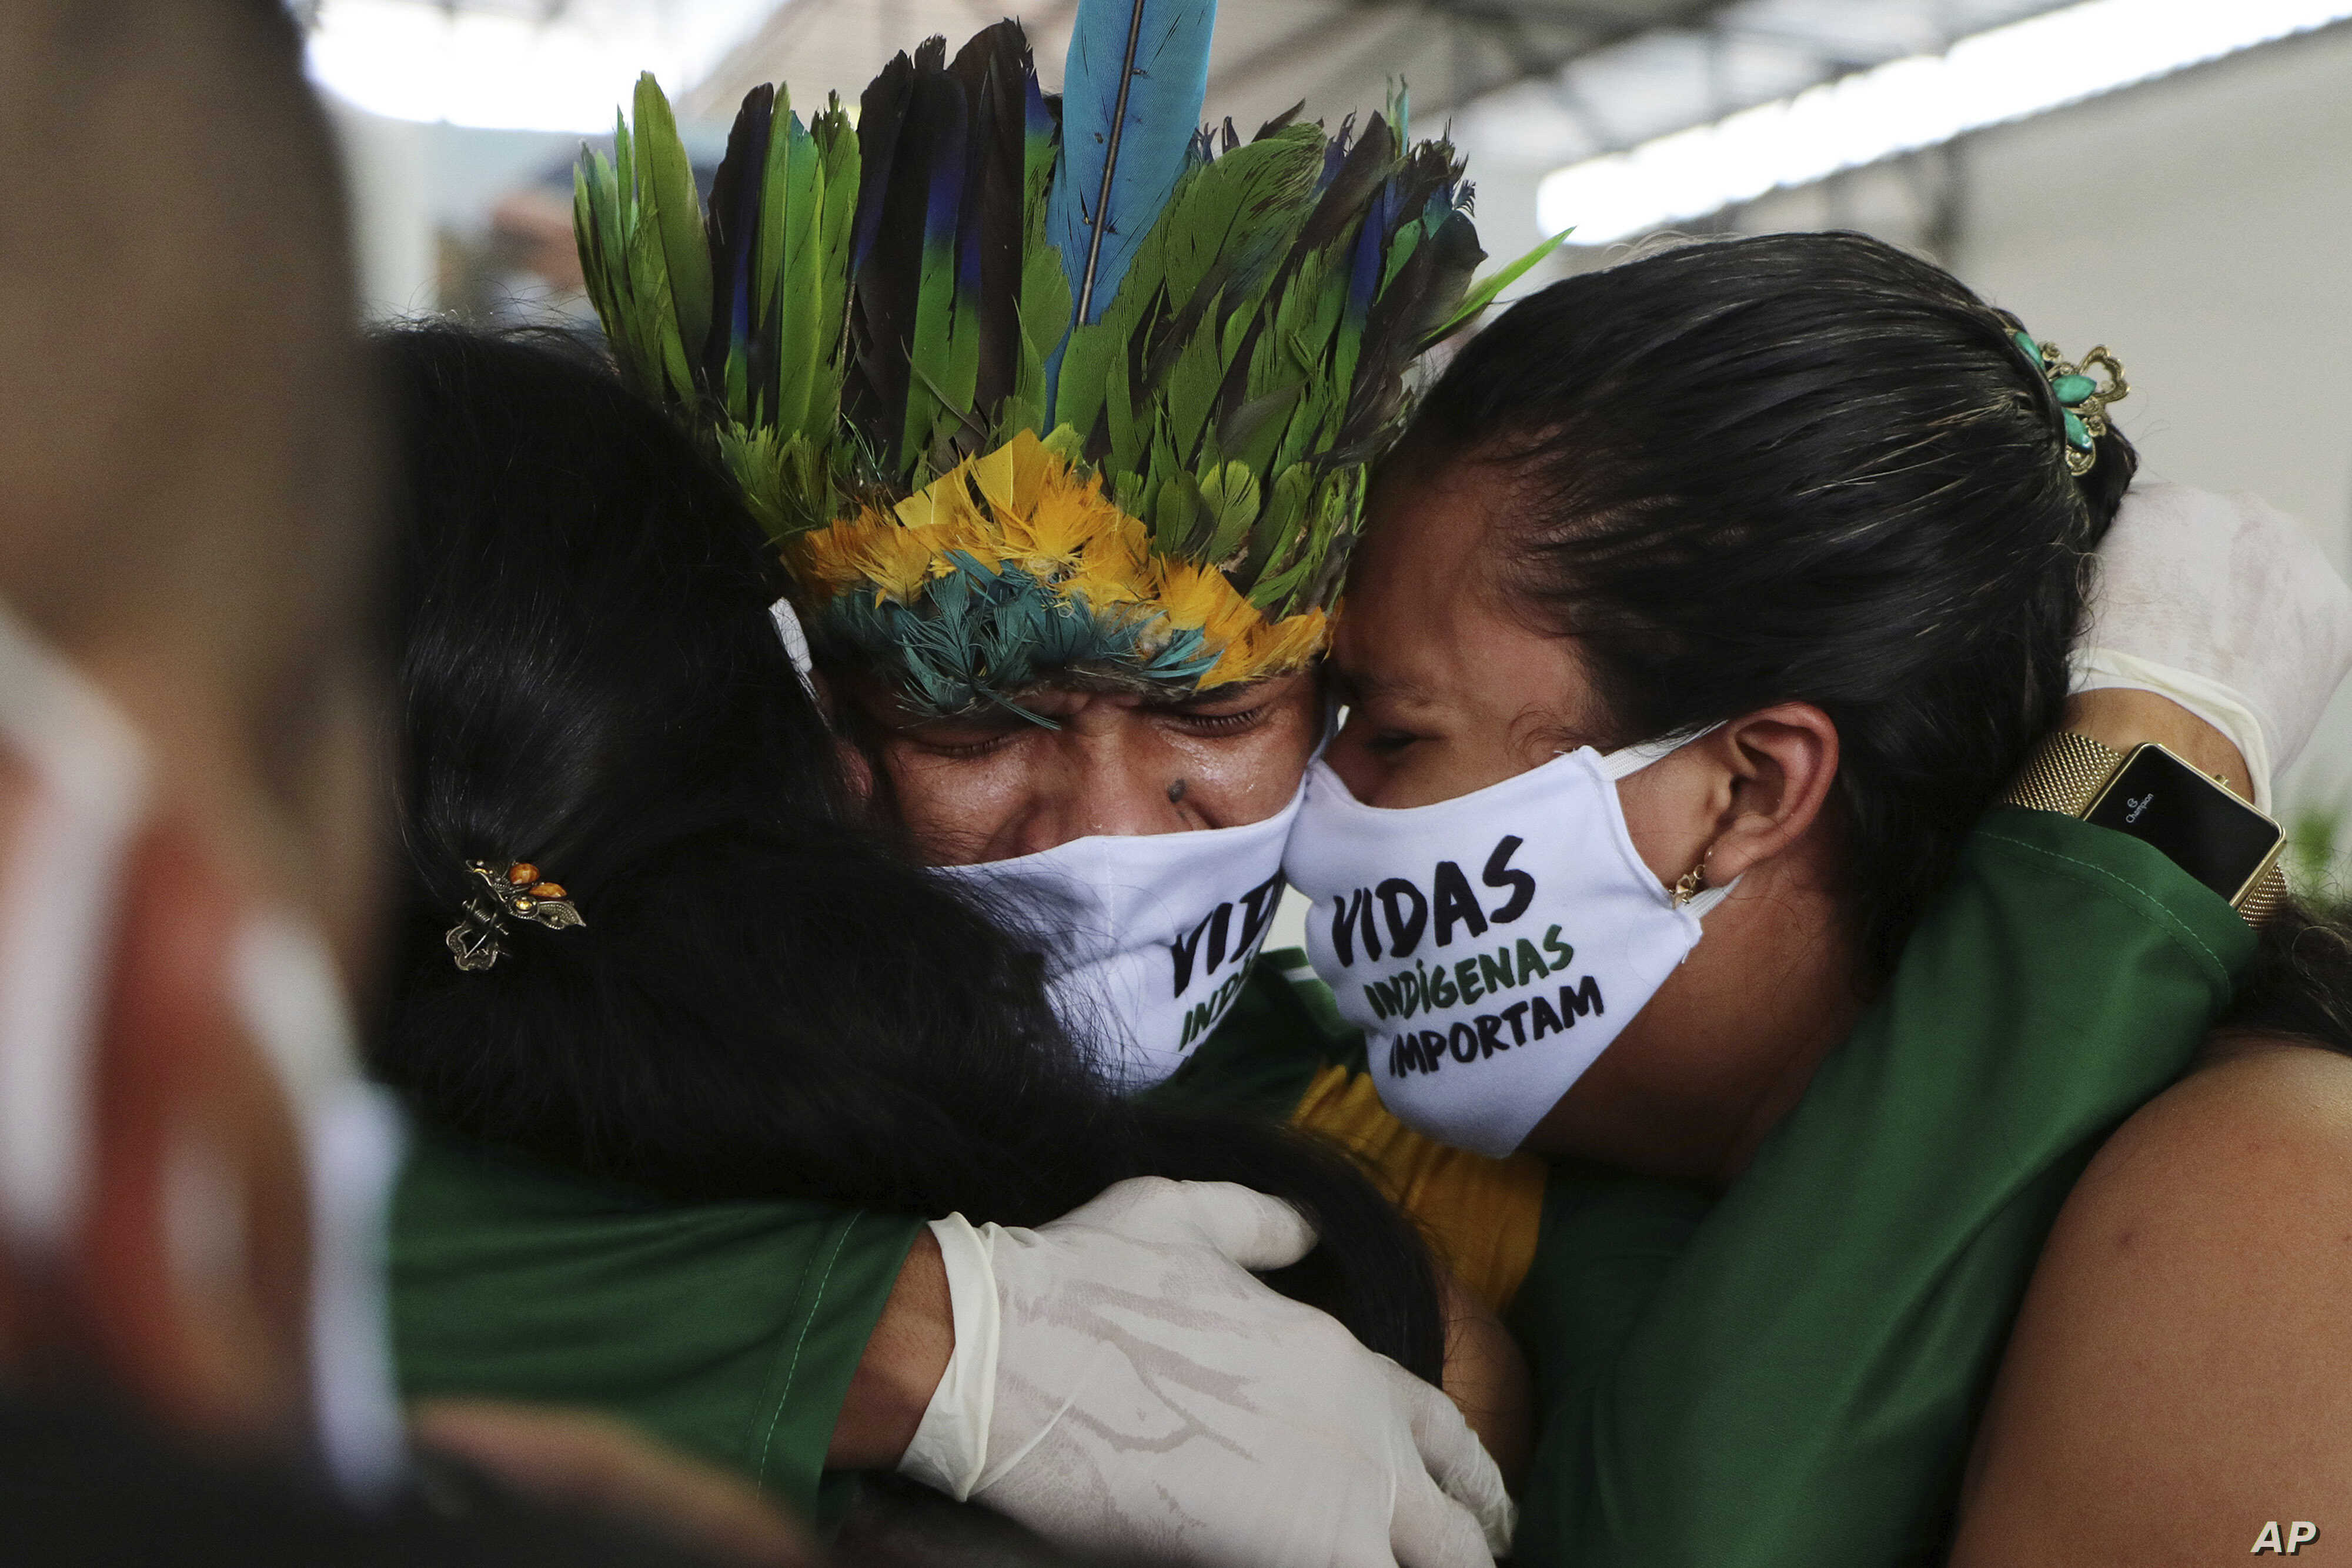 Brazil Surpasses the Mark of More than a Thousand Coronavirus Daily Deaths